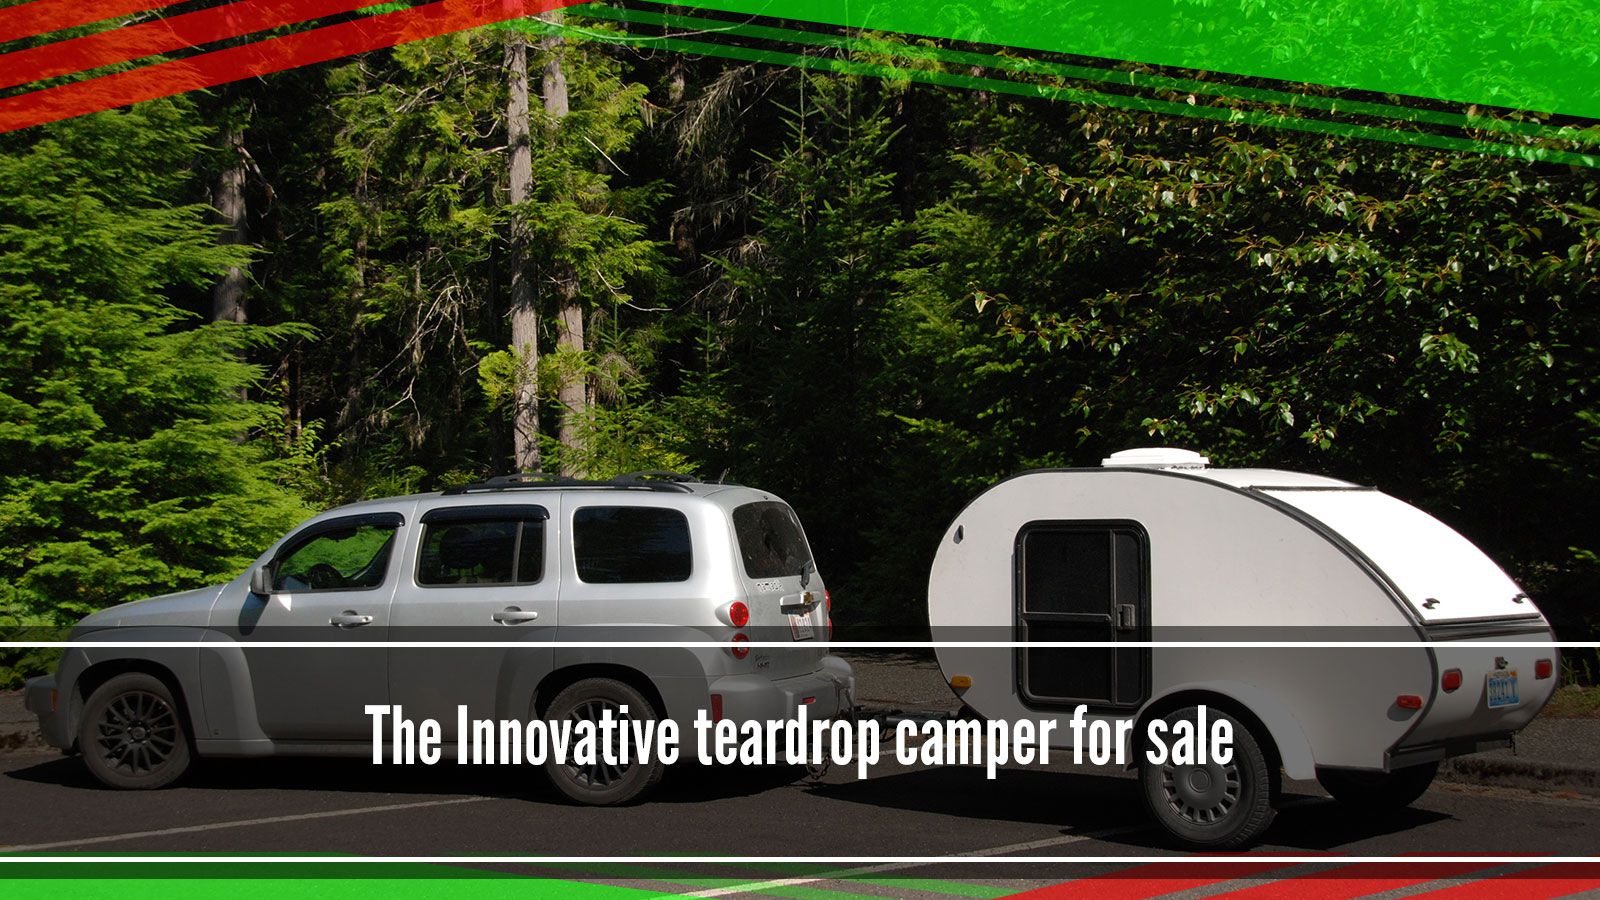 Teardrop camper for sale